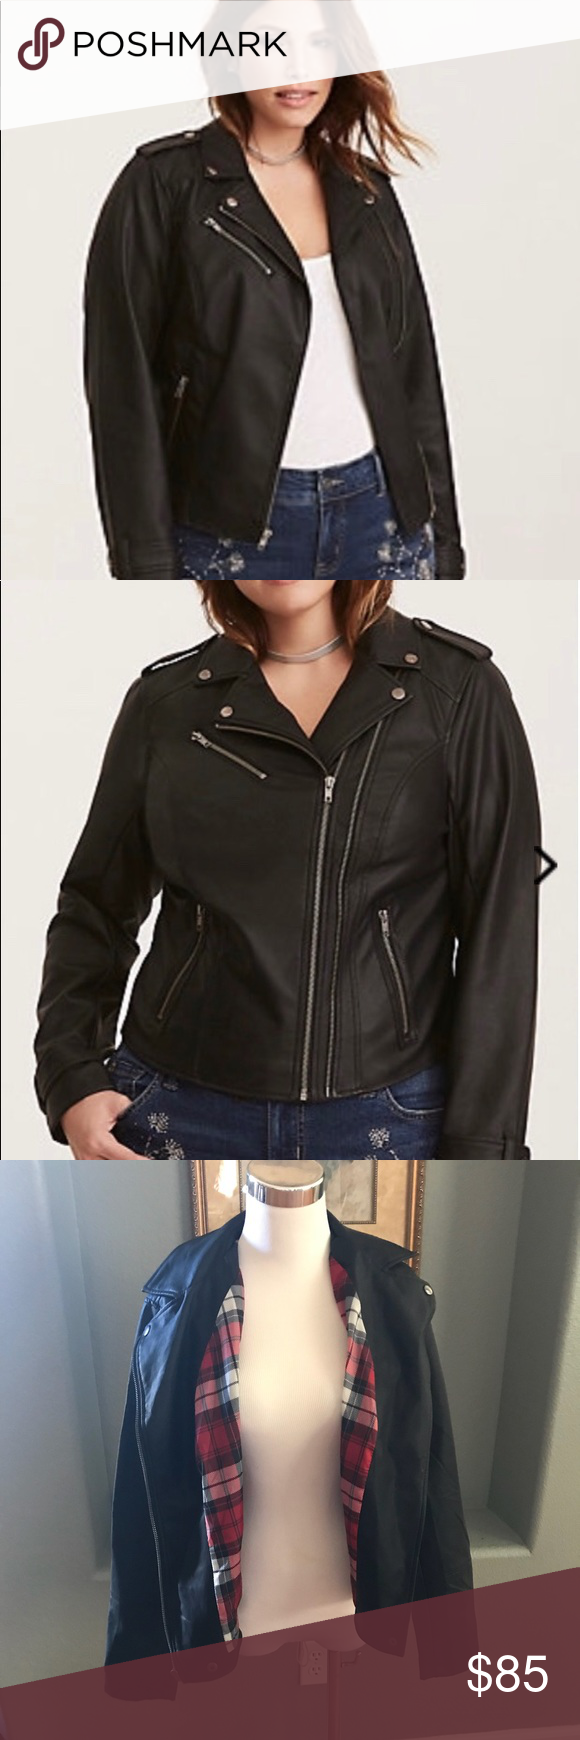 4730483db3a NWT Torrid Faux Black Leather Moto Jacket Model photos for reference. Brand  new black faux